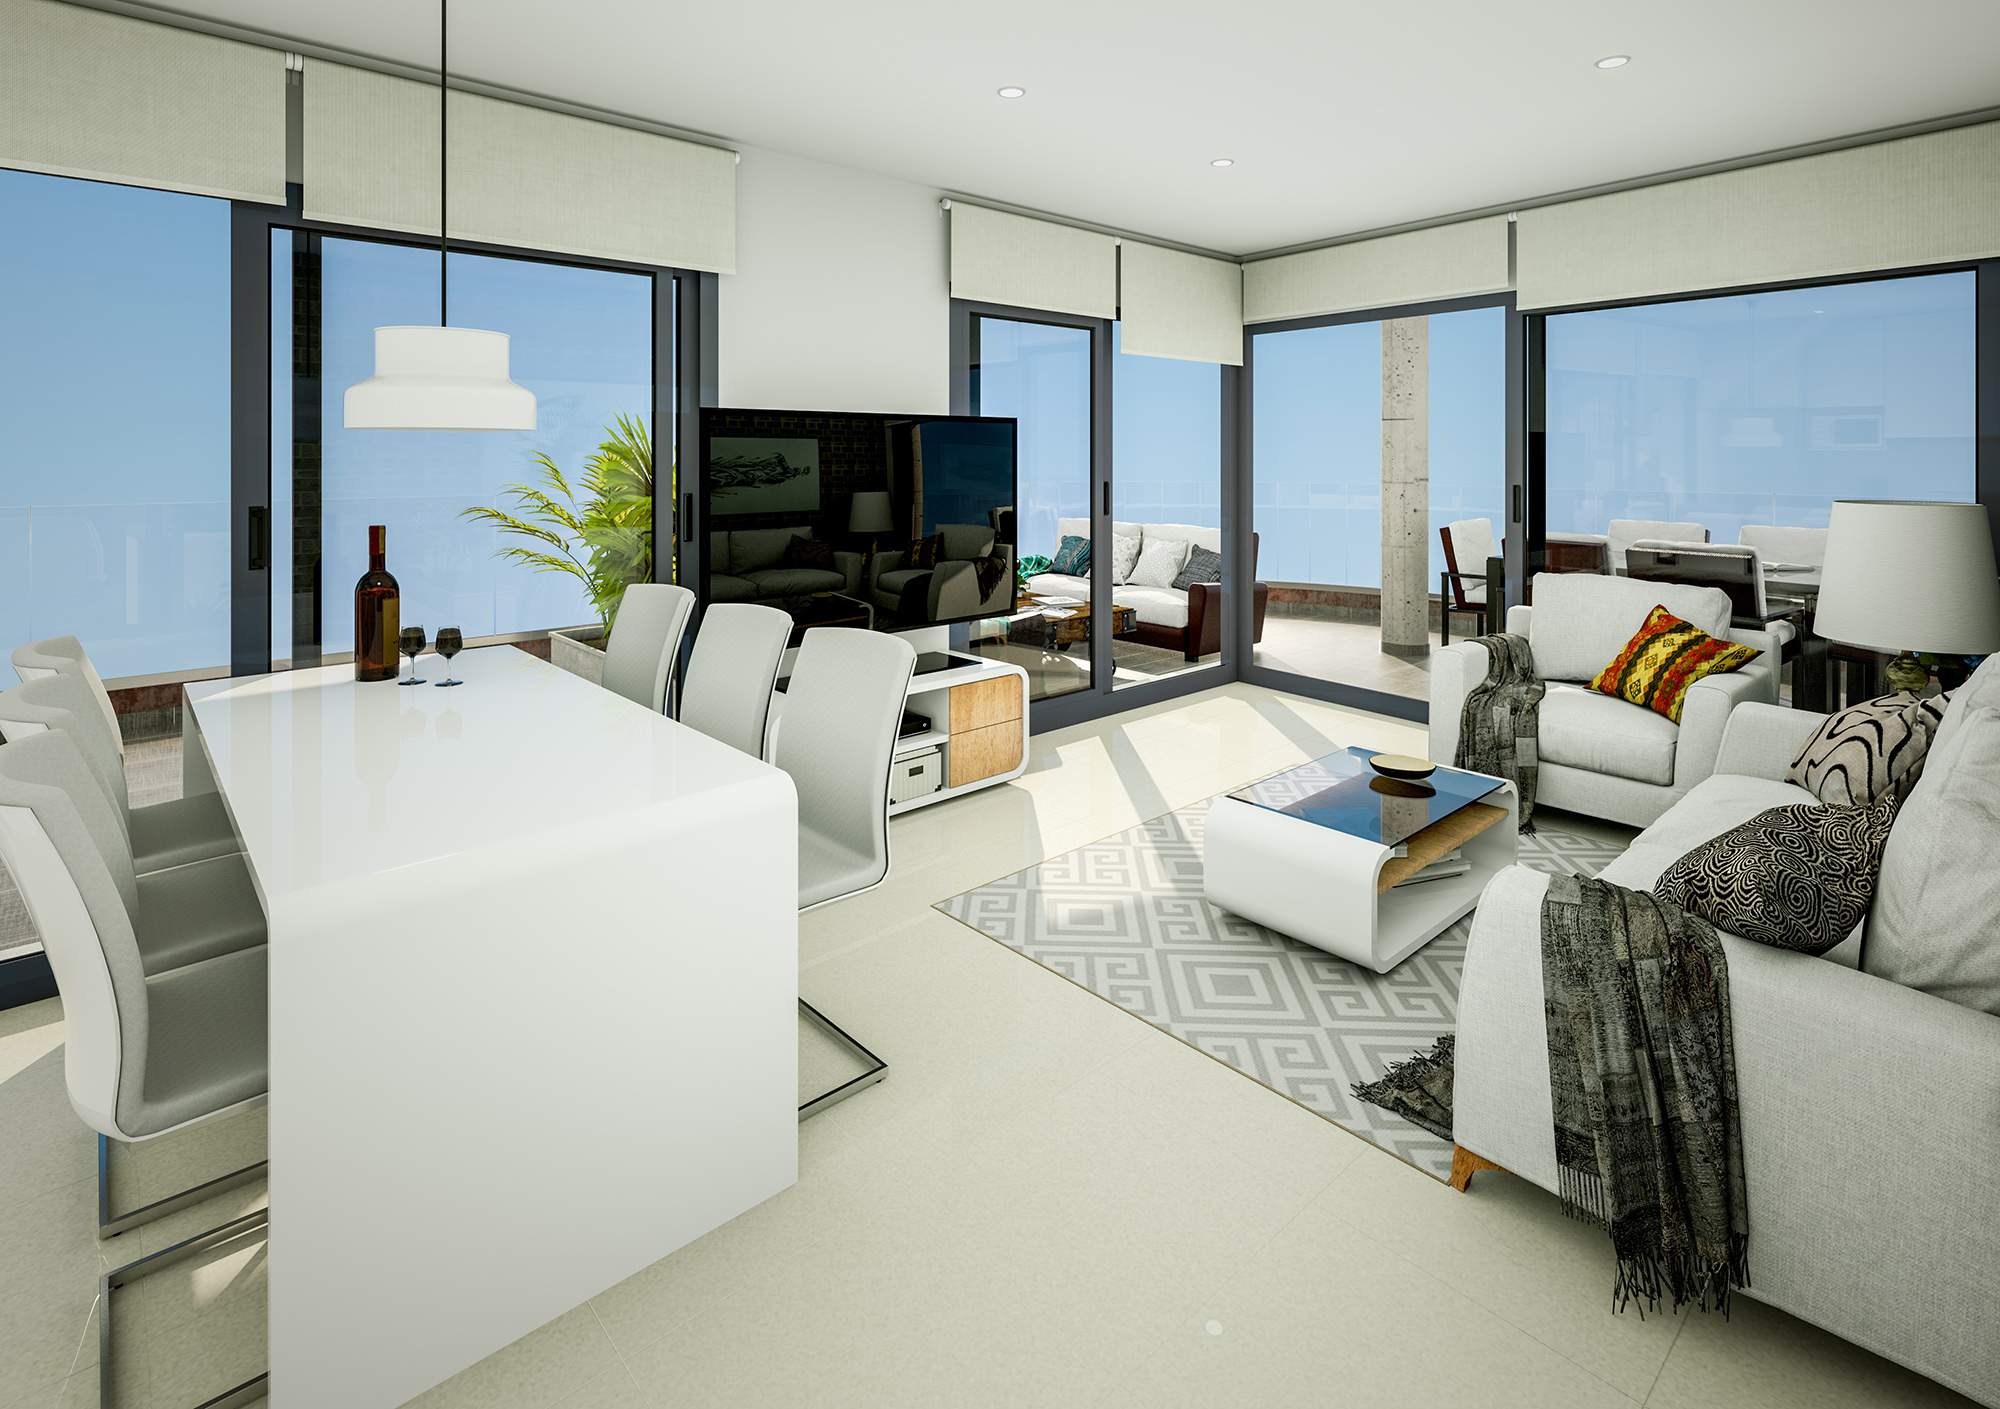 2 bedroom penthouse For Sale in Torrevieja - Main Image